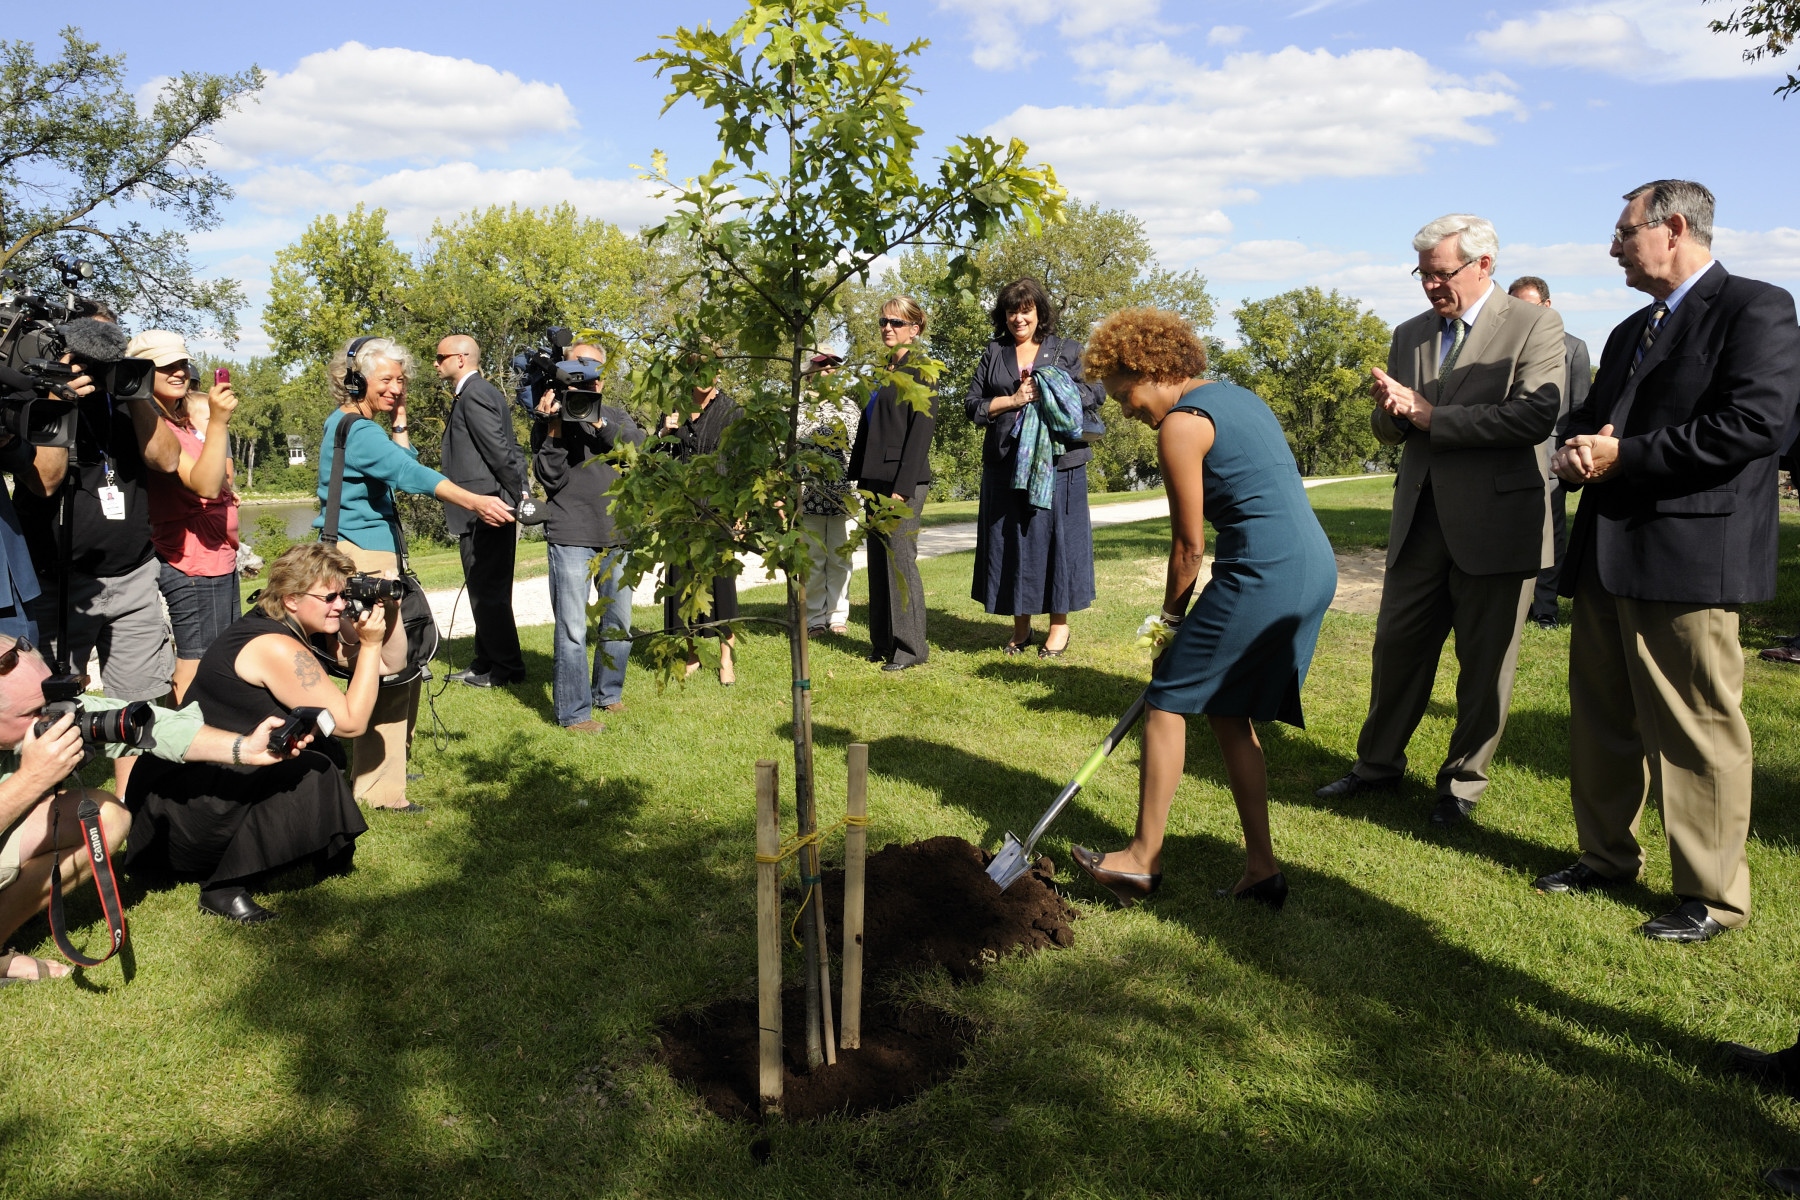 Her Excellency also planted a tree for this occasion. Premier of Manitoba the Honourable Greg Selinger was also in attendance.